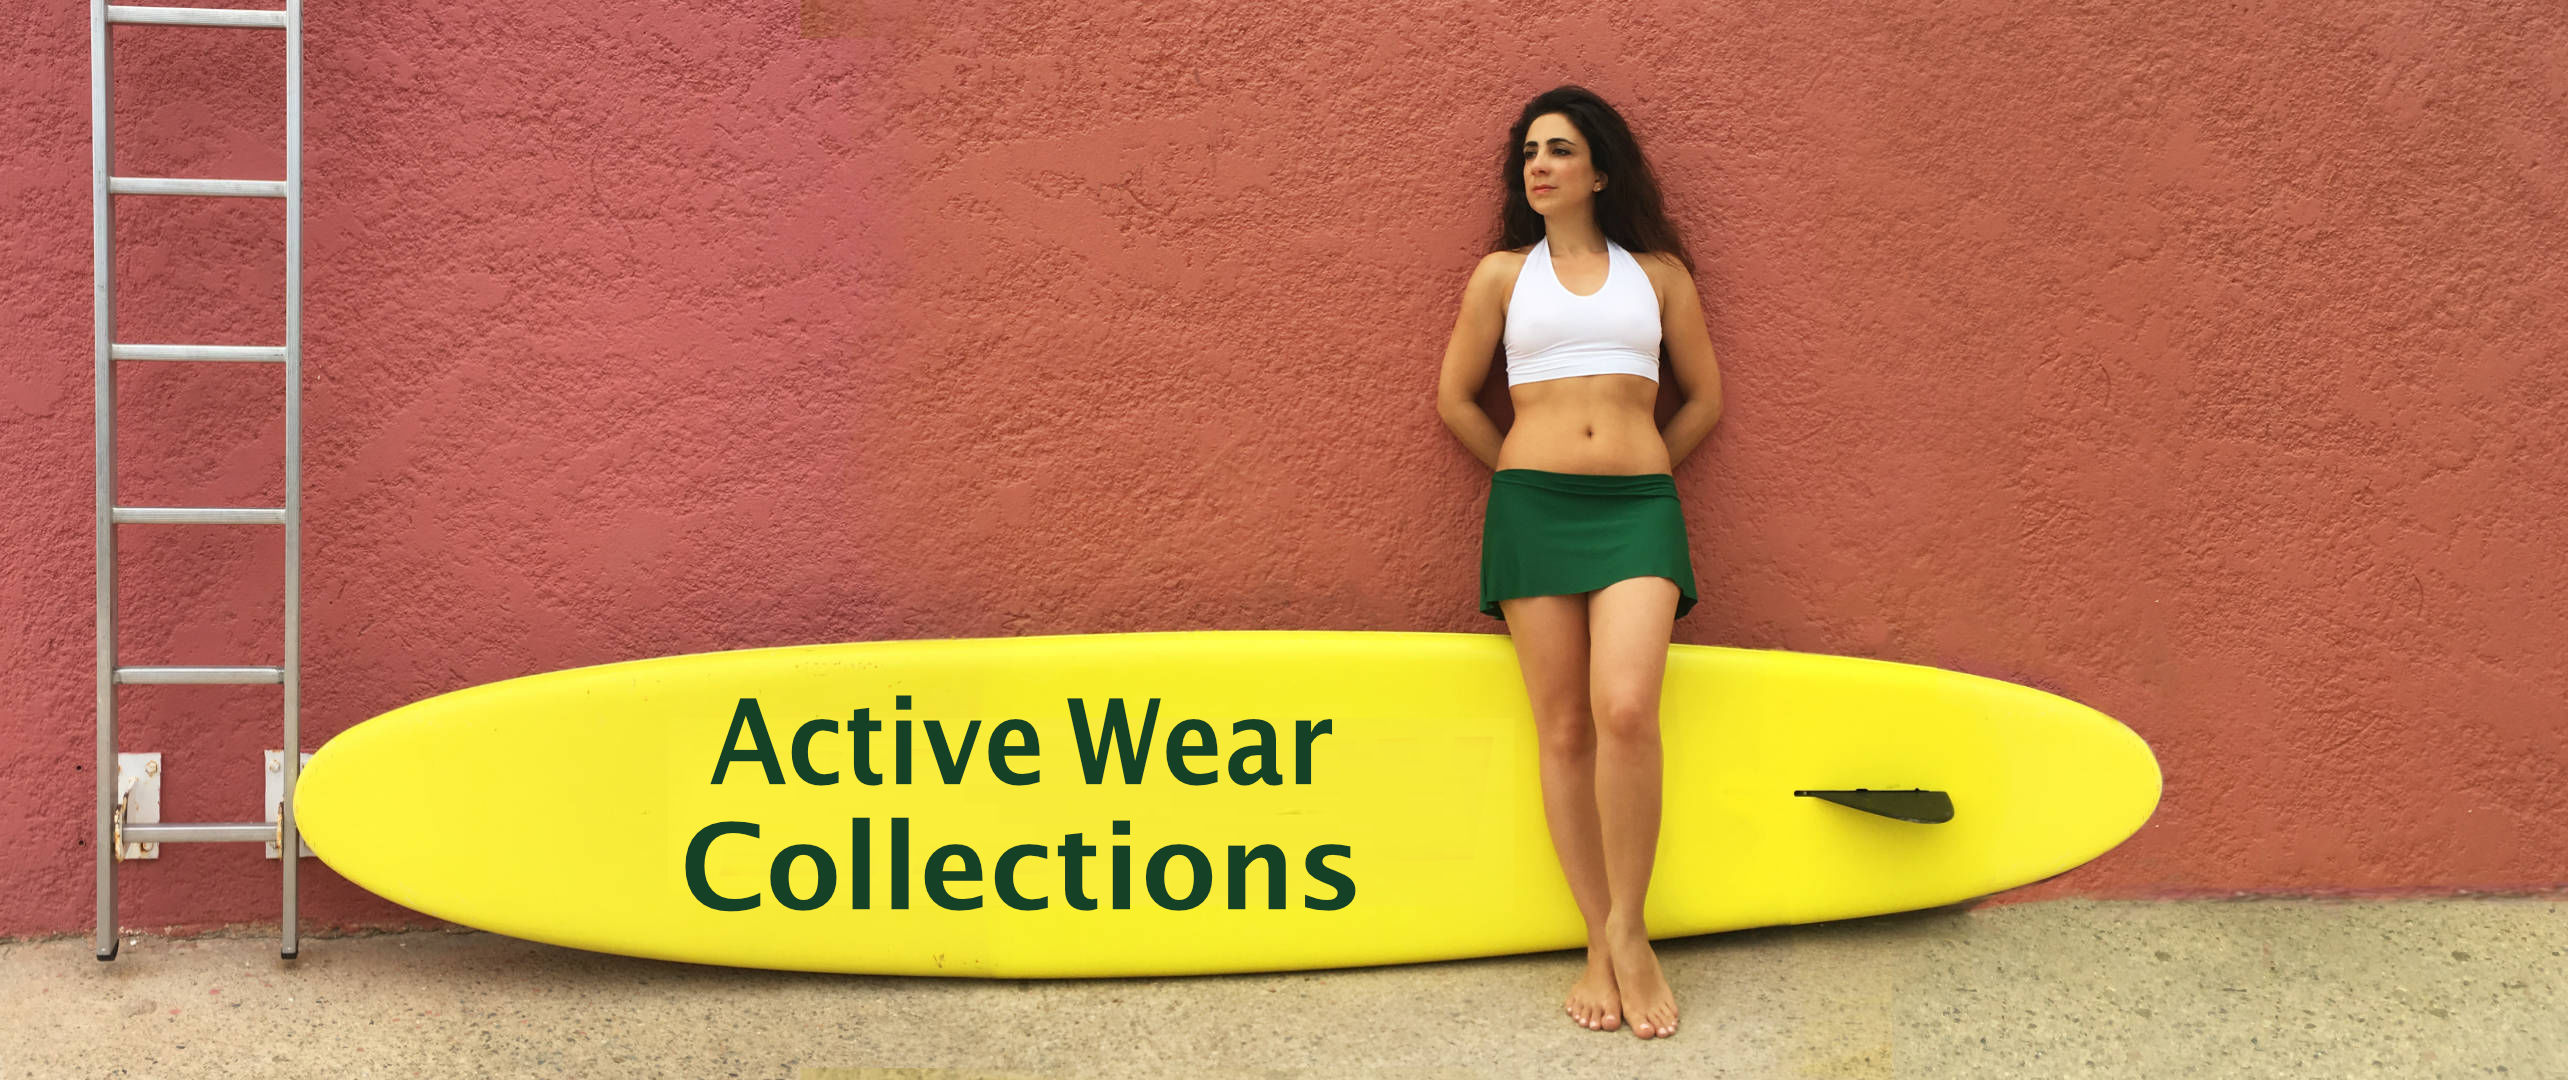 Boutique active wear collections